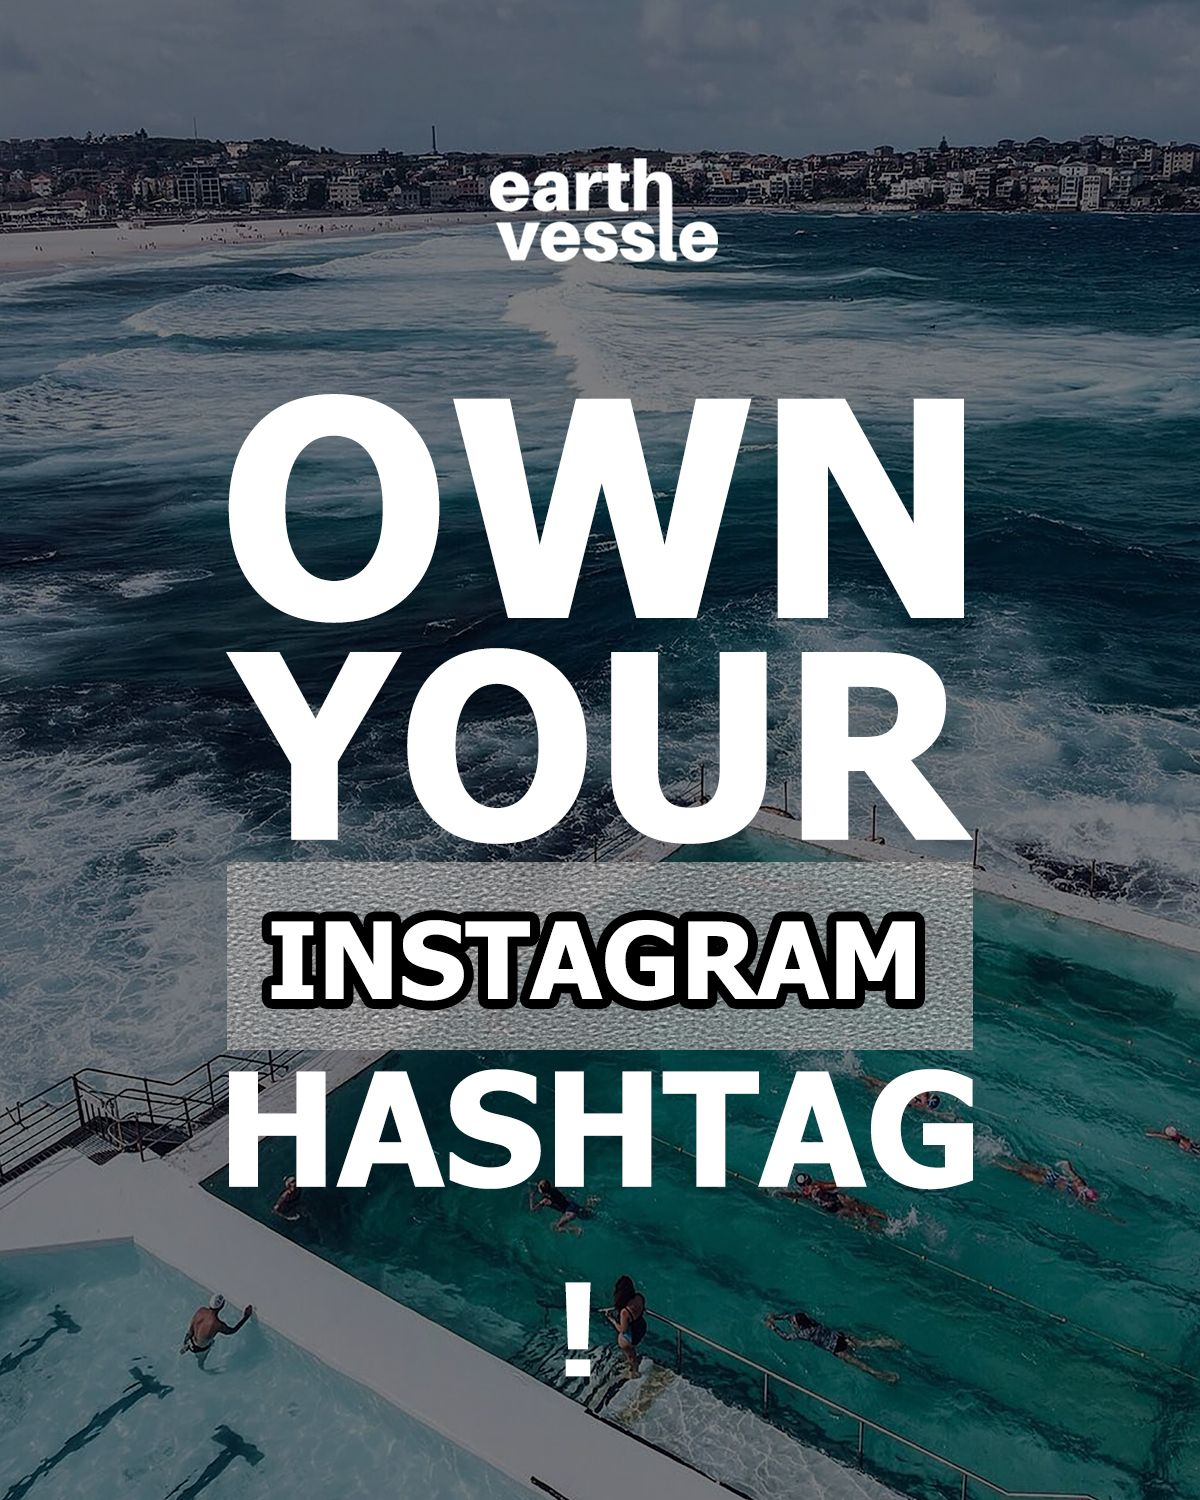 Create my own instagram hashtags without shadow banned in